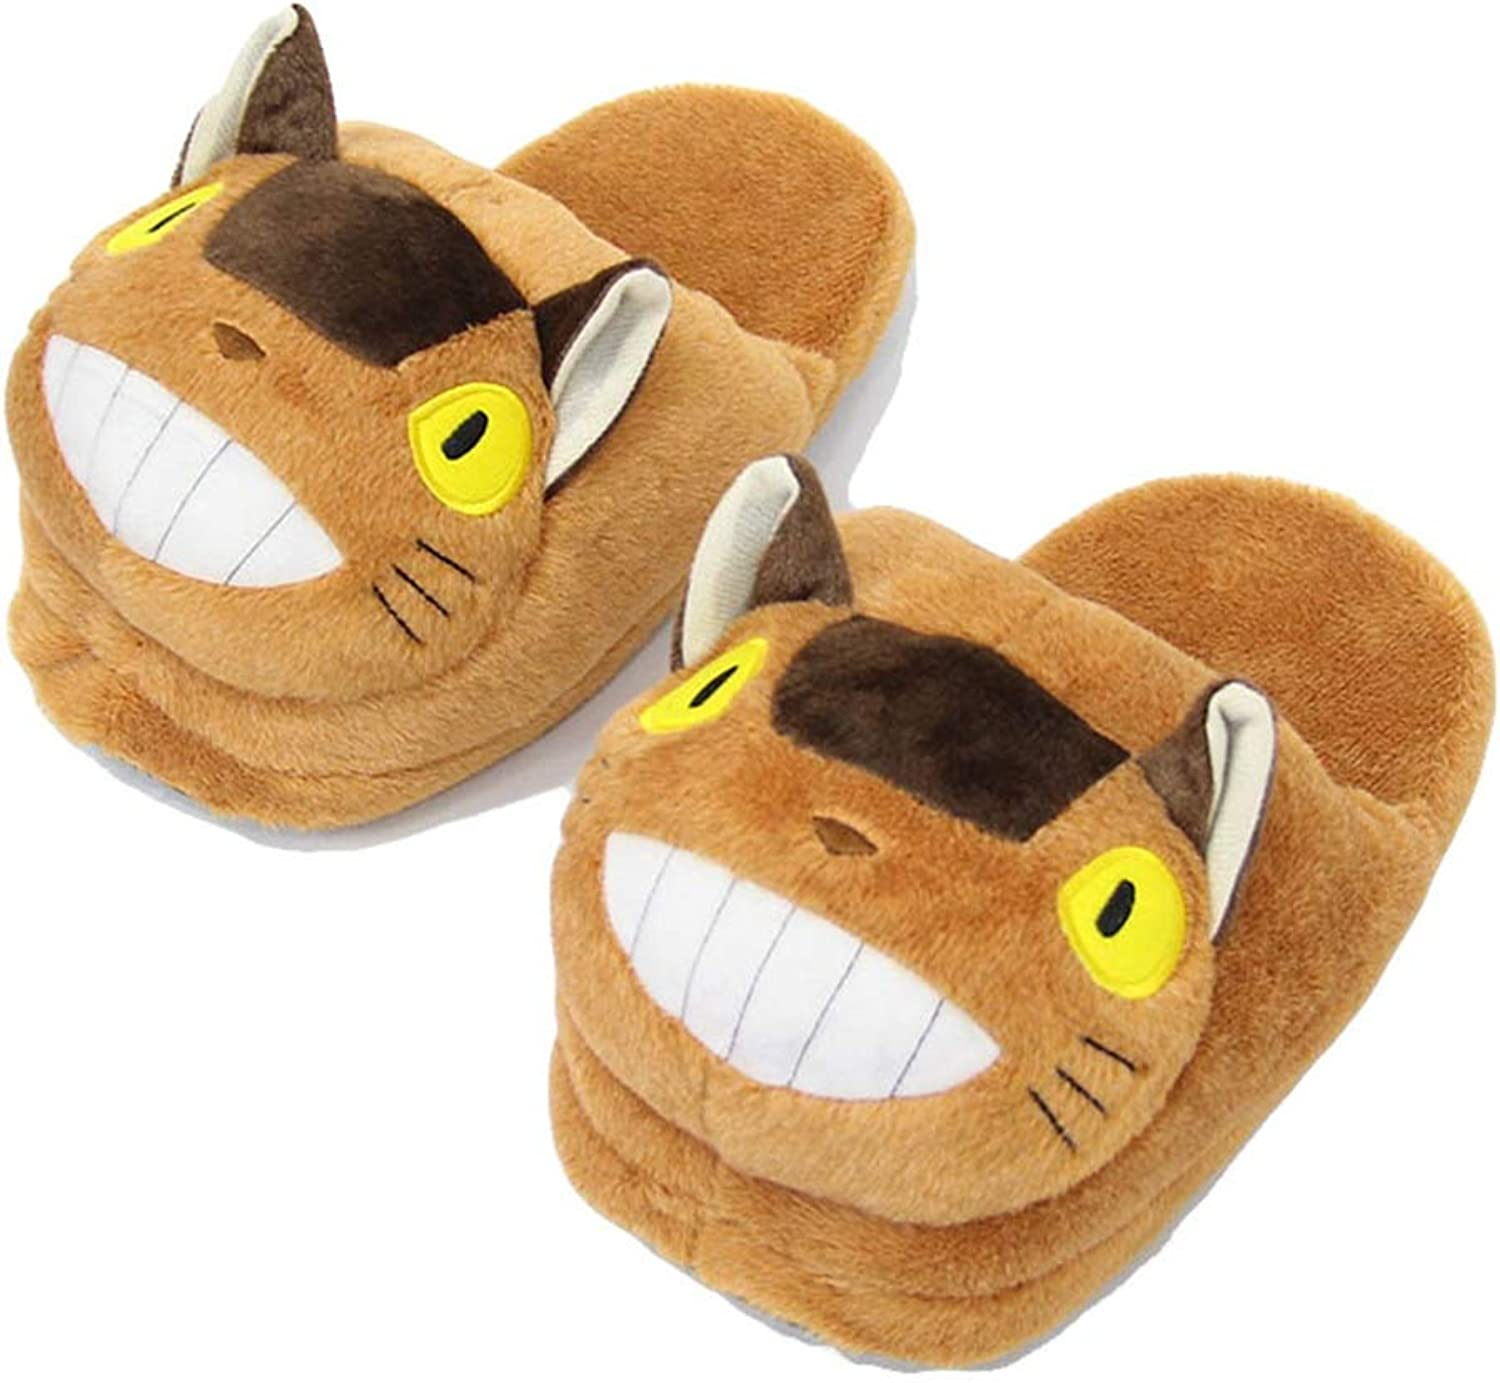 York Zhu Slippers - Winter Soft Cozy Booties Non-Slip Plush Cat Ankle Slippers